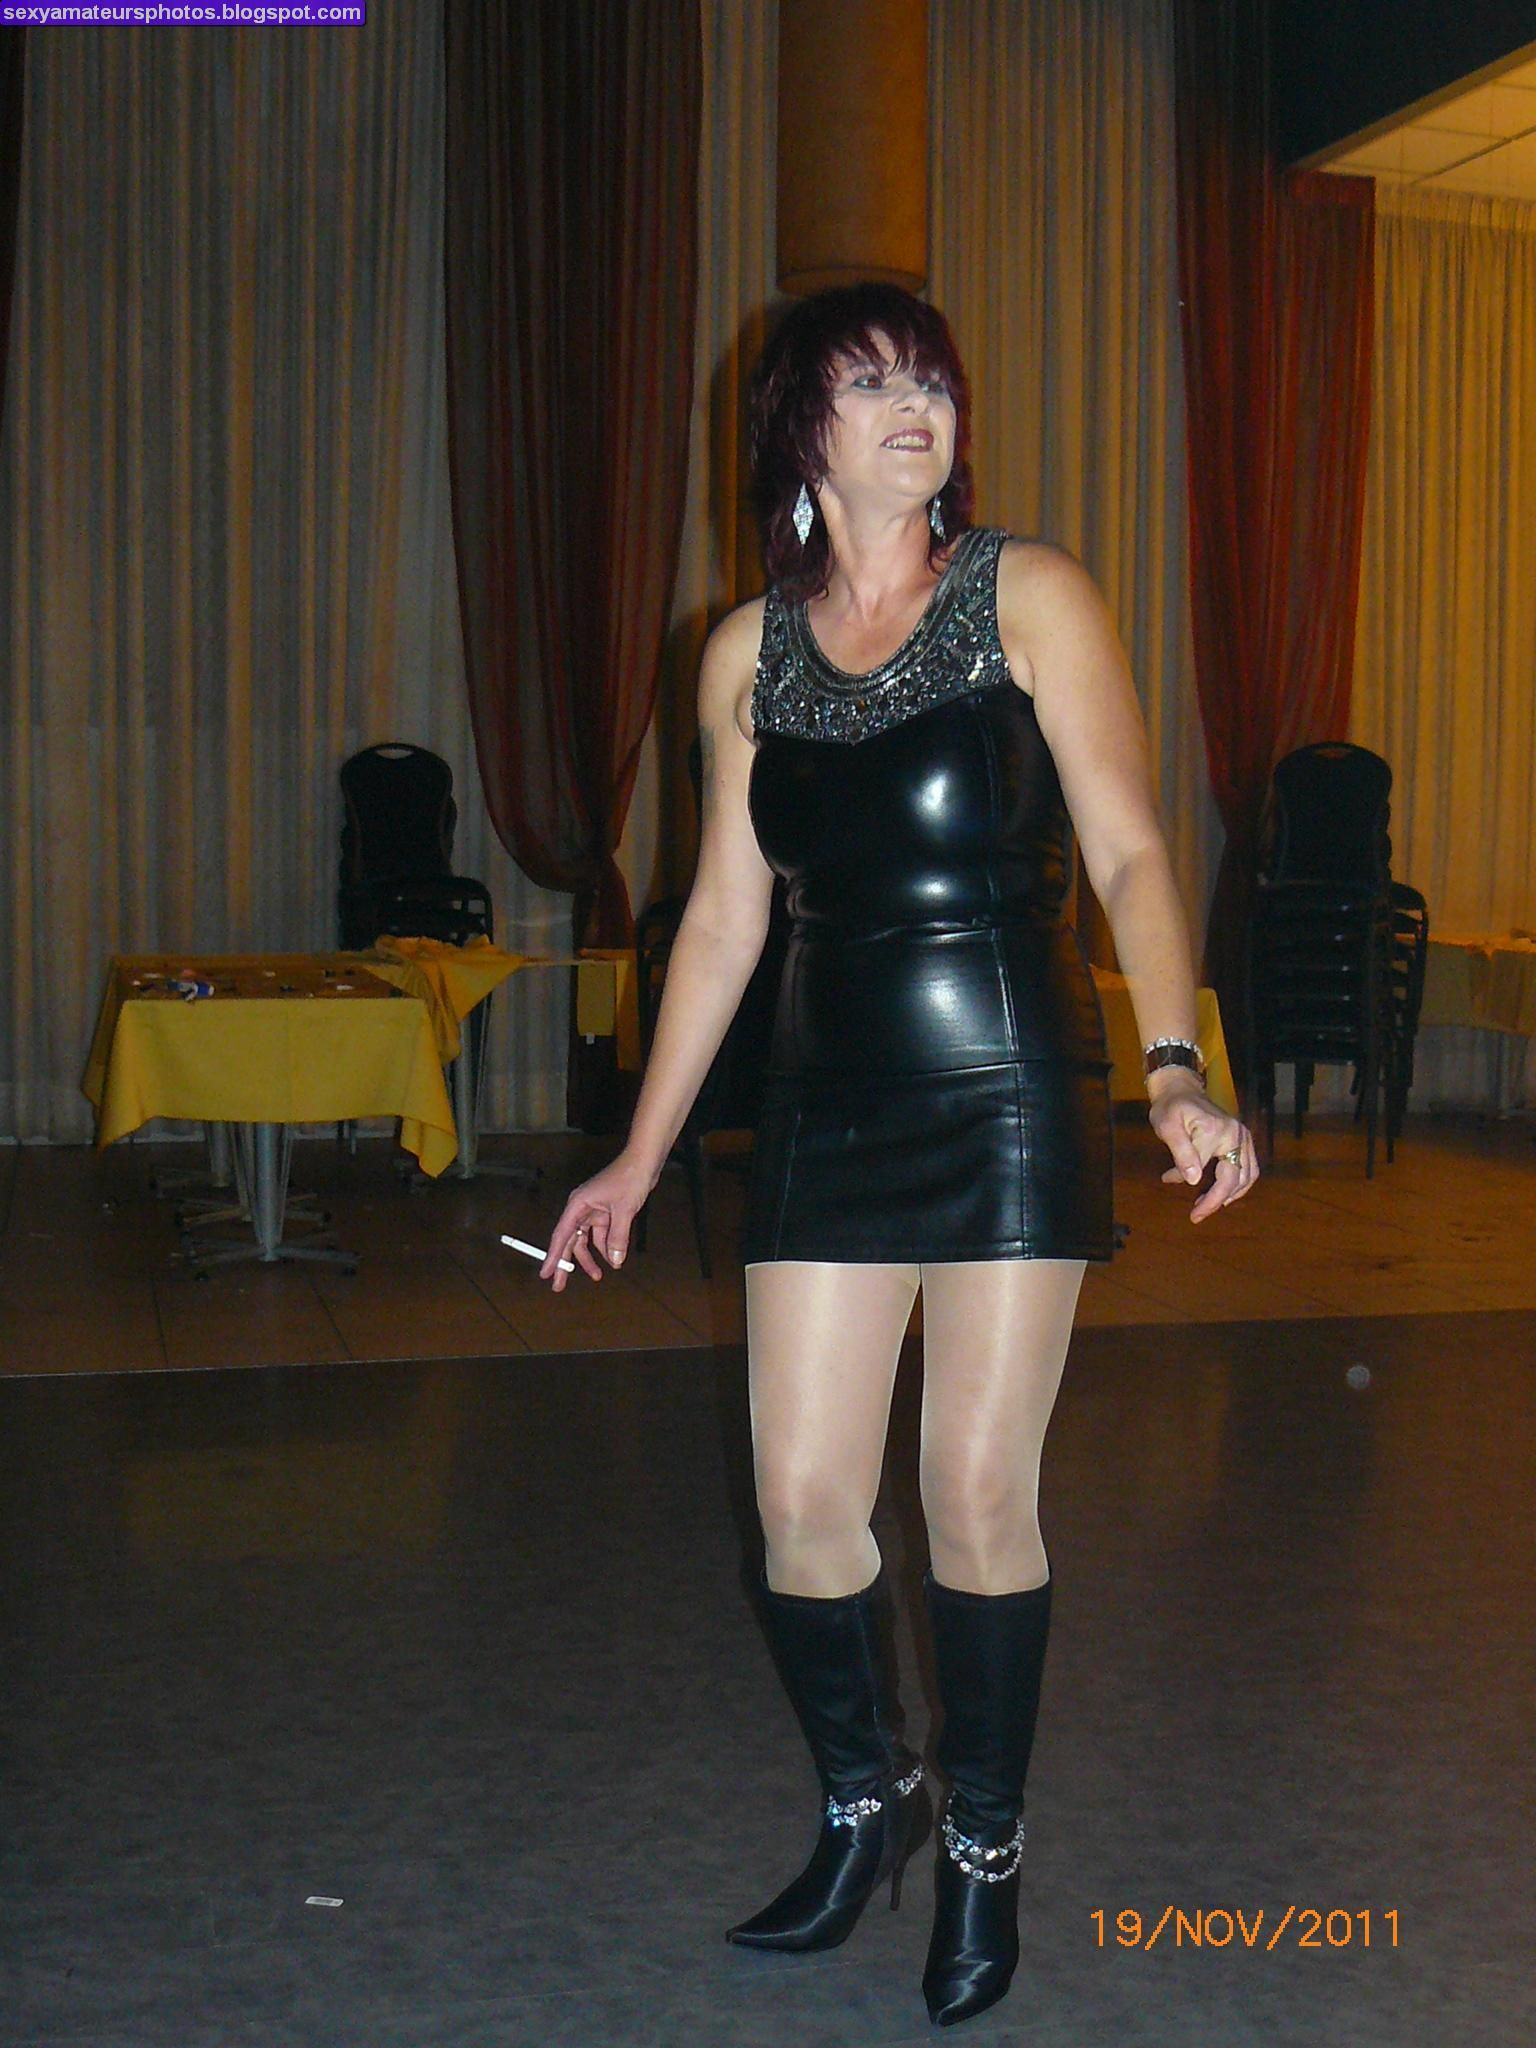 Milf in leather dress Matures Pinterest Sexy Leather and Porn